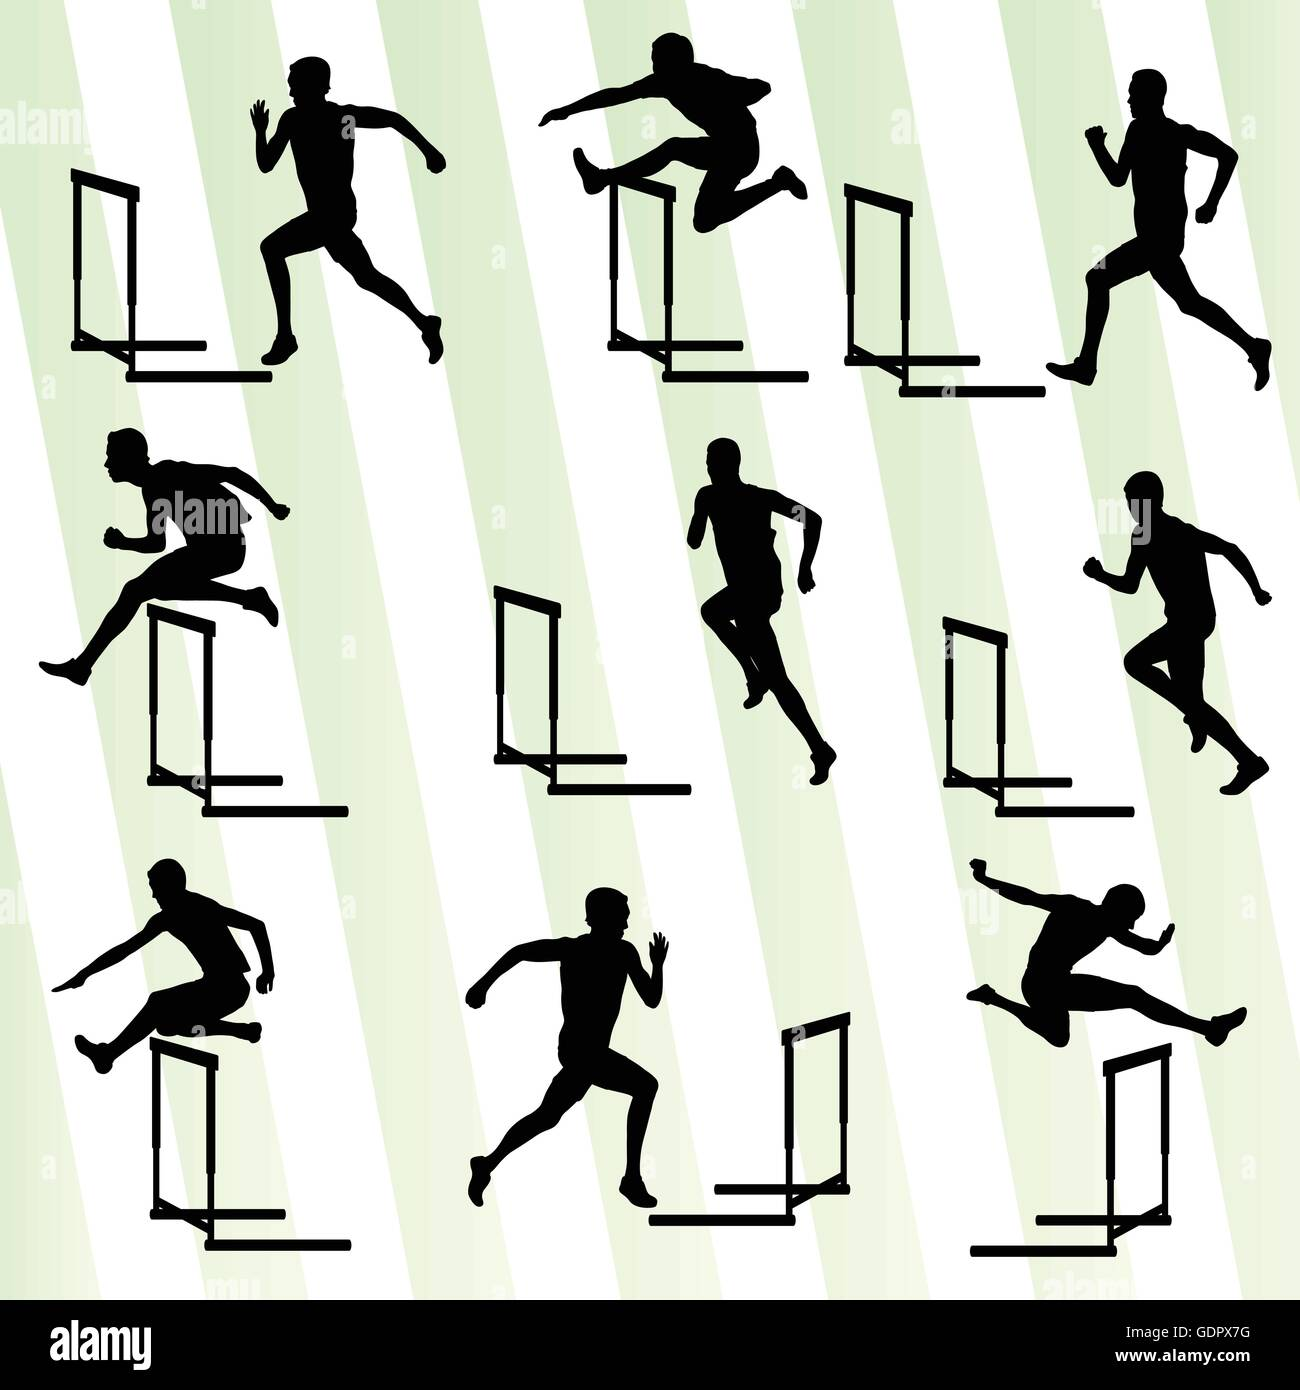 Athlete man hurdling in track and field vector background set concept Stock Vector